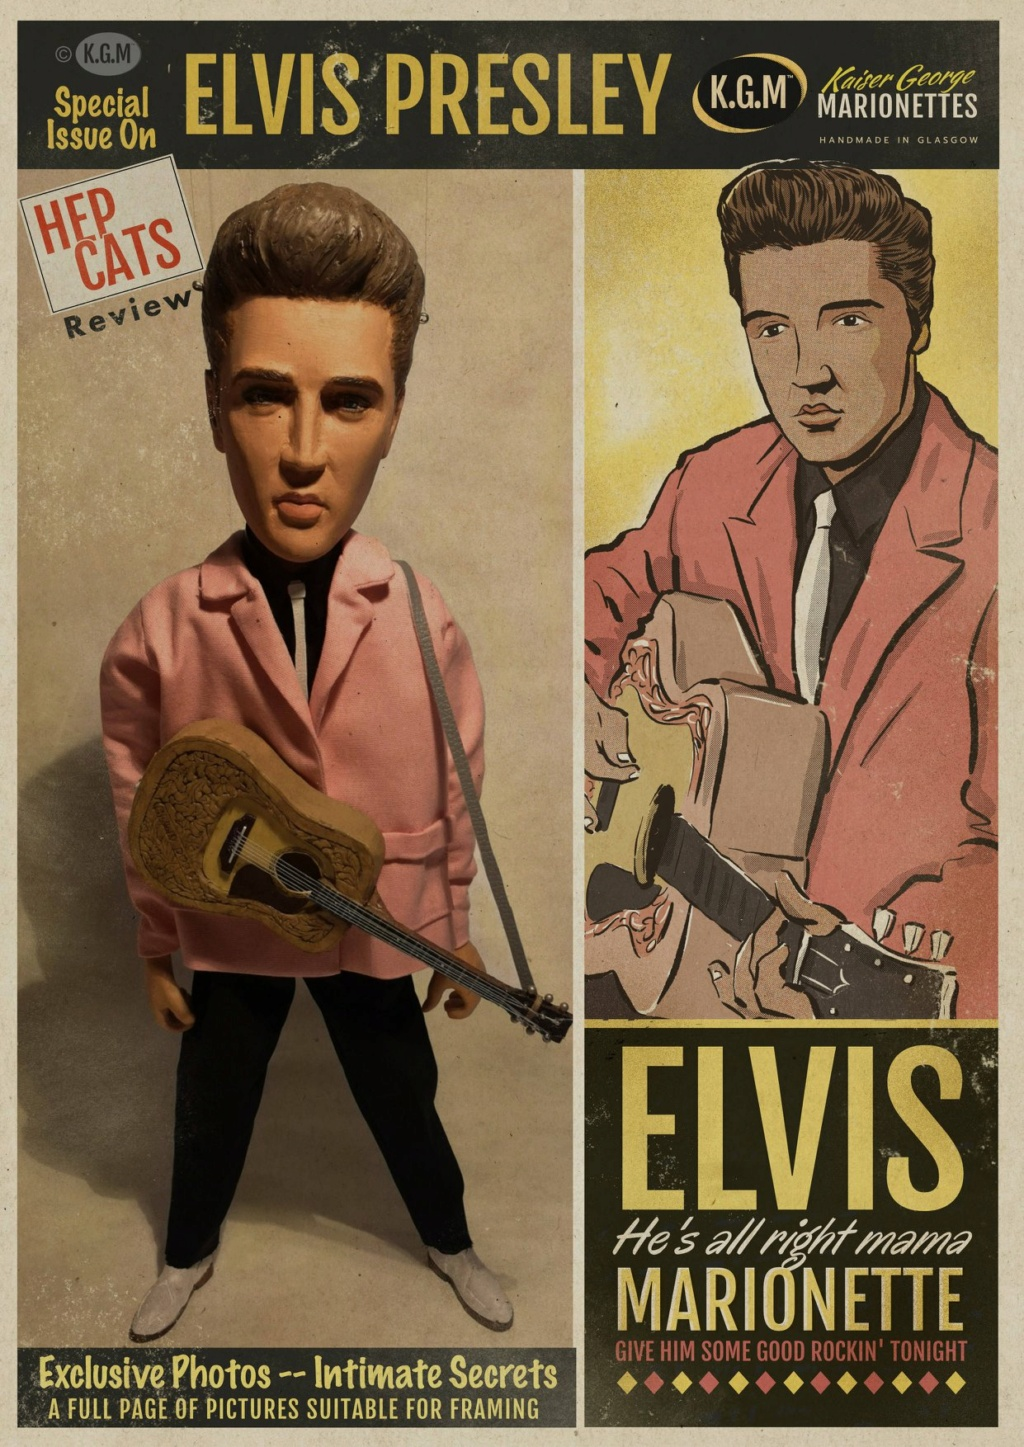 50s Rock 'n' roll legends in marionettes - KGM - Kaiser George Marionettes - 11865311